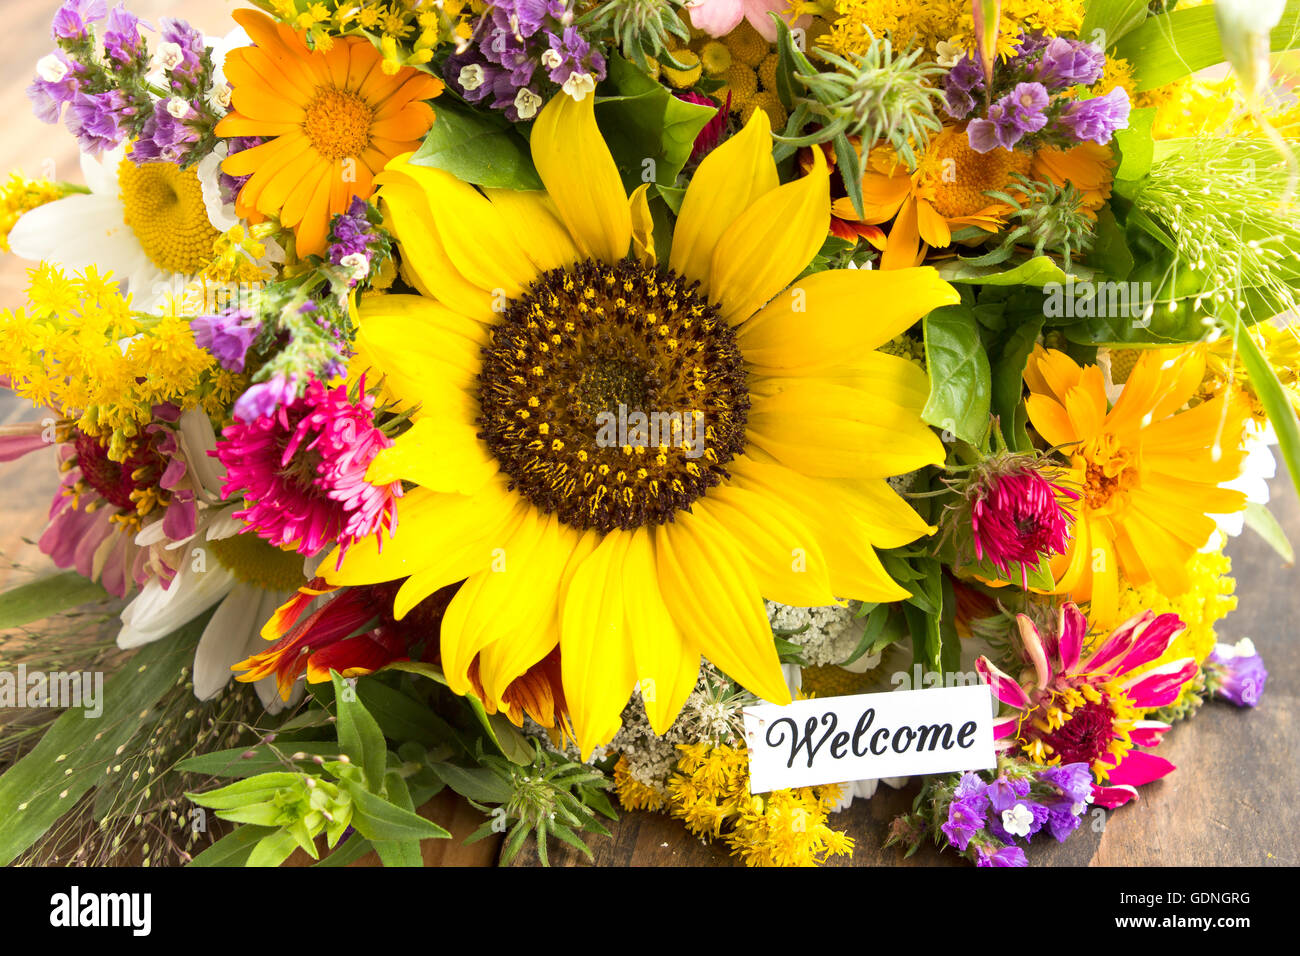 Welcome Card With Bouquet Of Summer Flowers Stock Photo 111726932